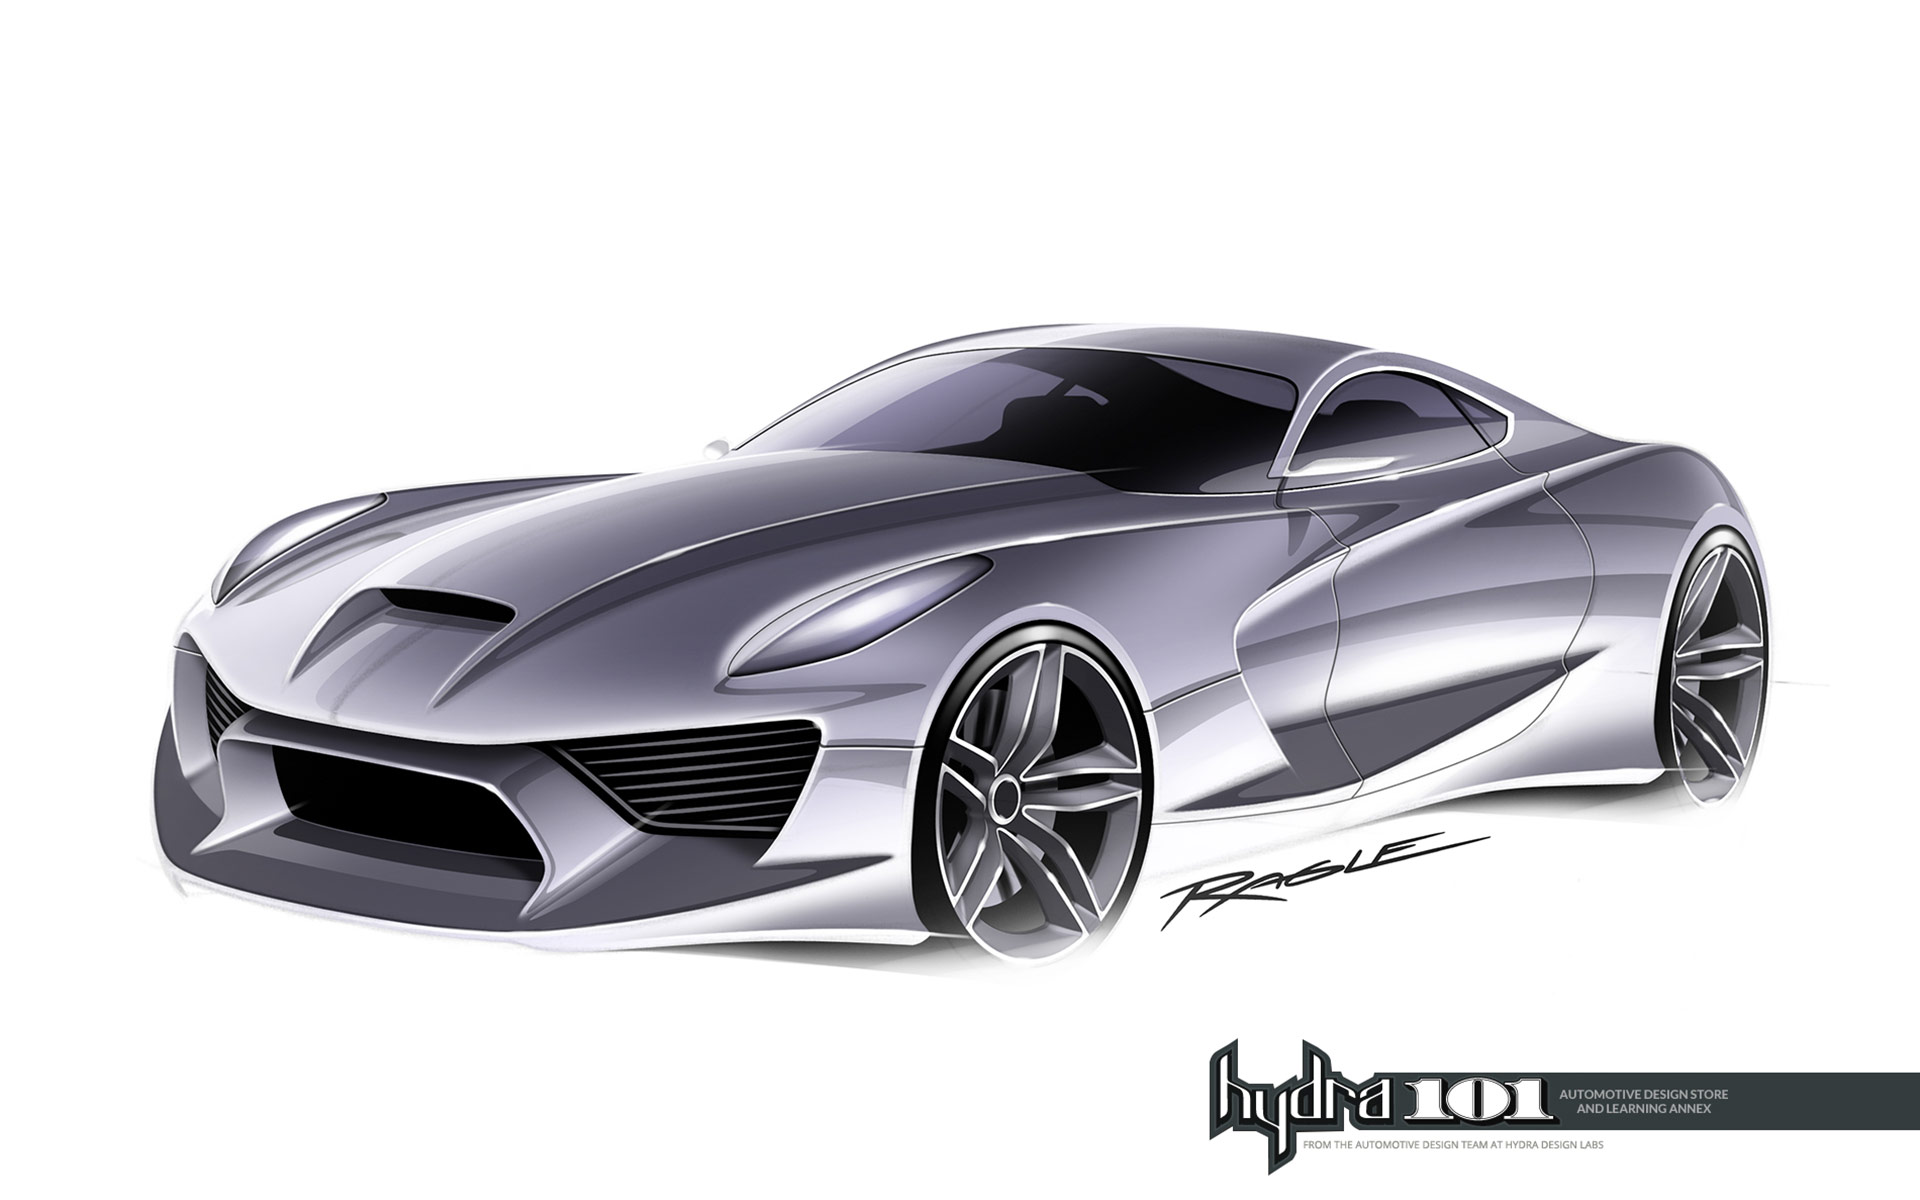 Supercar Design Sketch By Gary Ragle - Car Body Design